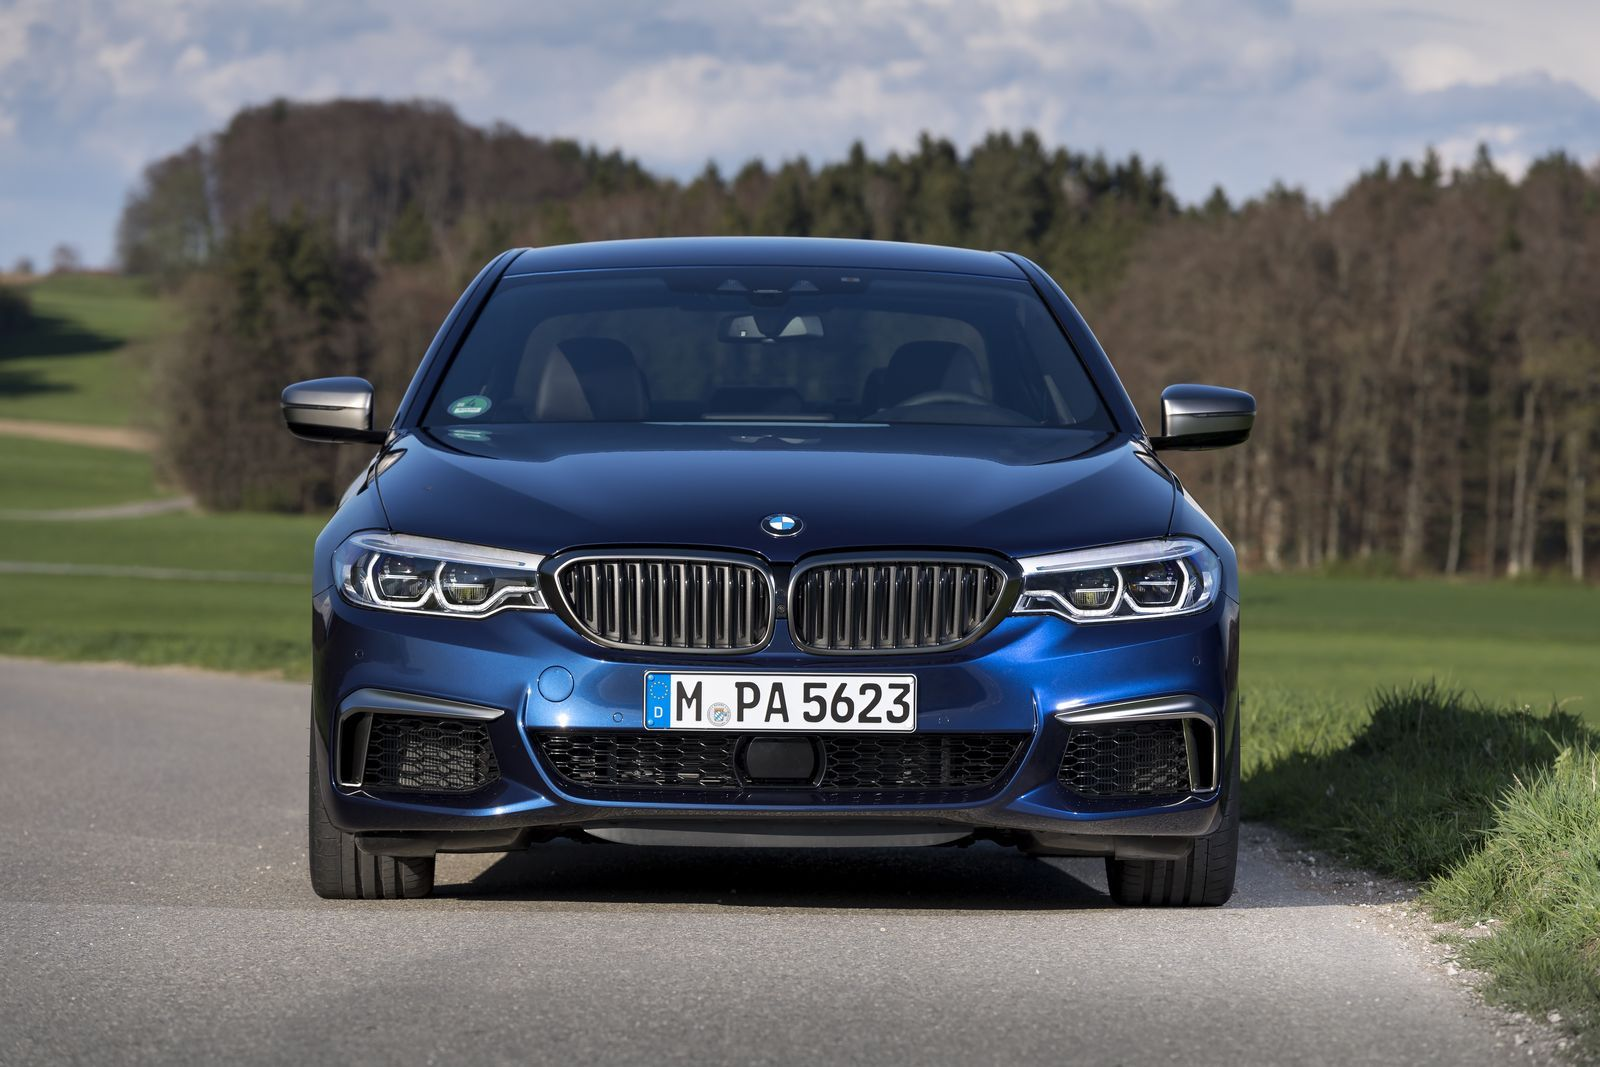 Bmw reveals every detail of m550i xdrive and 530e iperformance in mega gallery 164 pics gallerieshtml